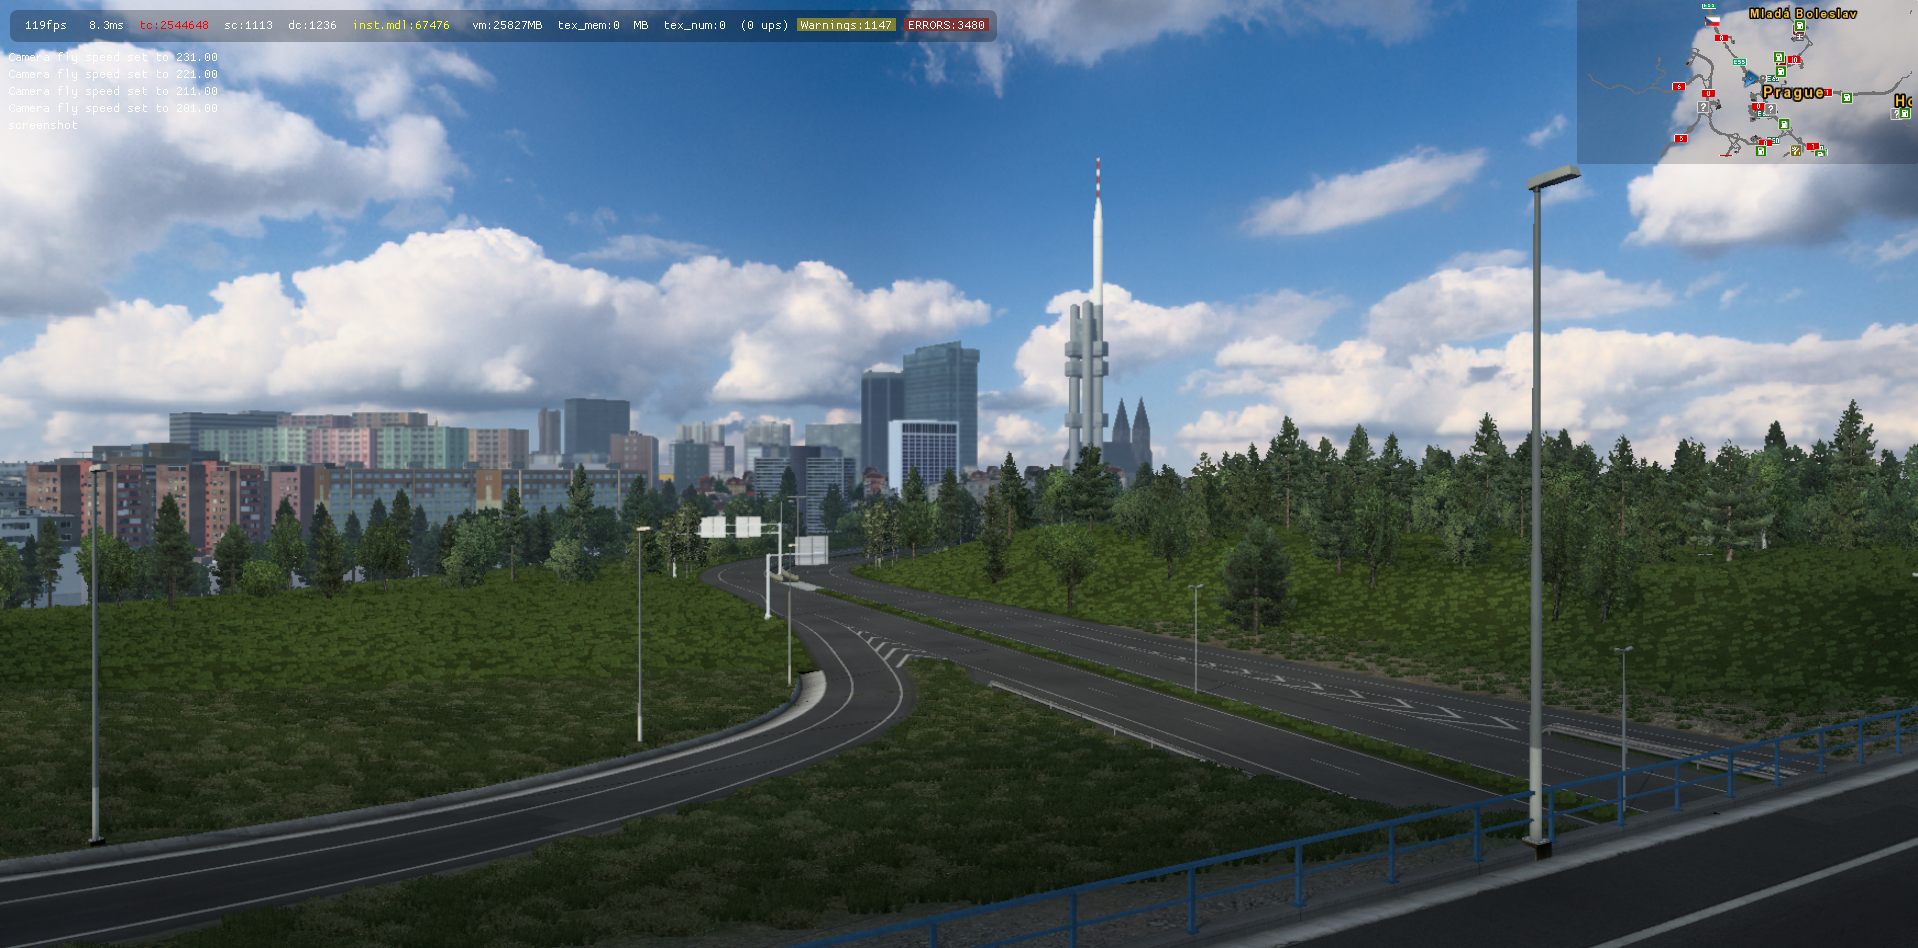 ets2_20210606_145559_00.png